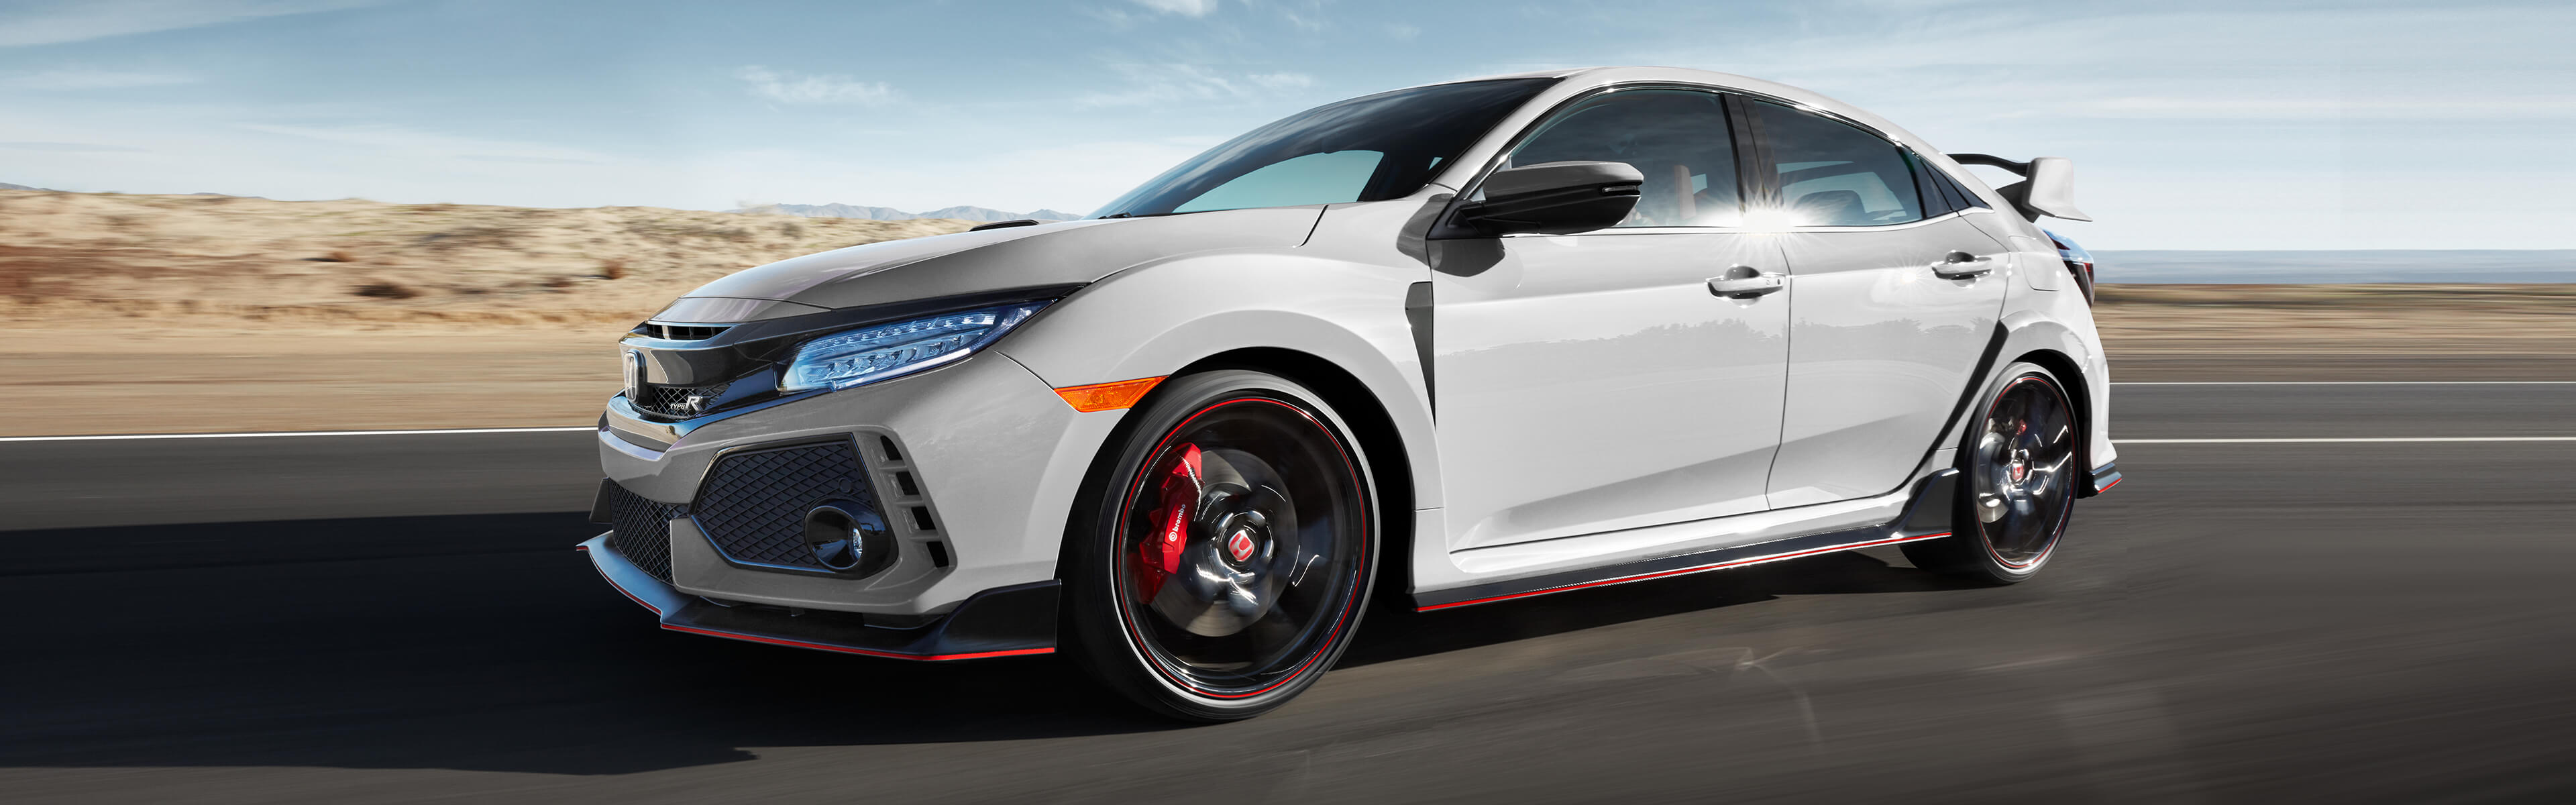 Image of 2018 Civic Type R on racetrack